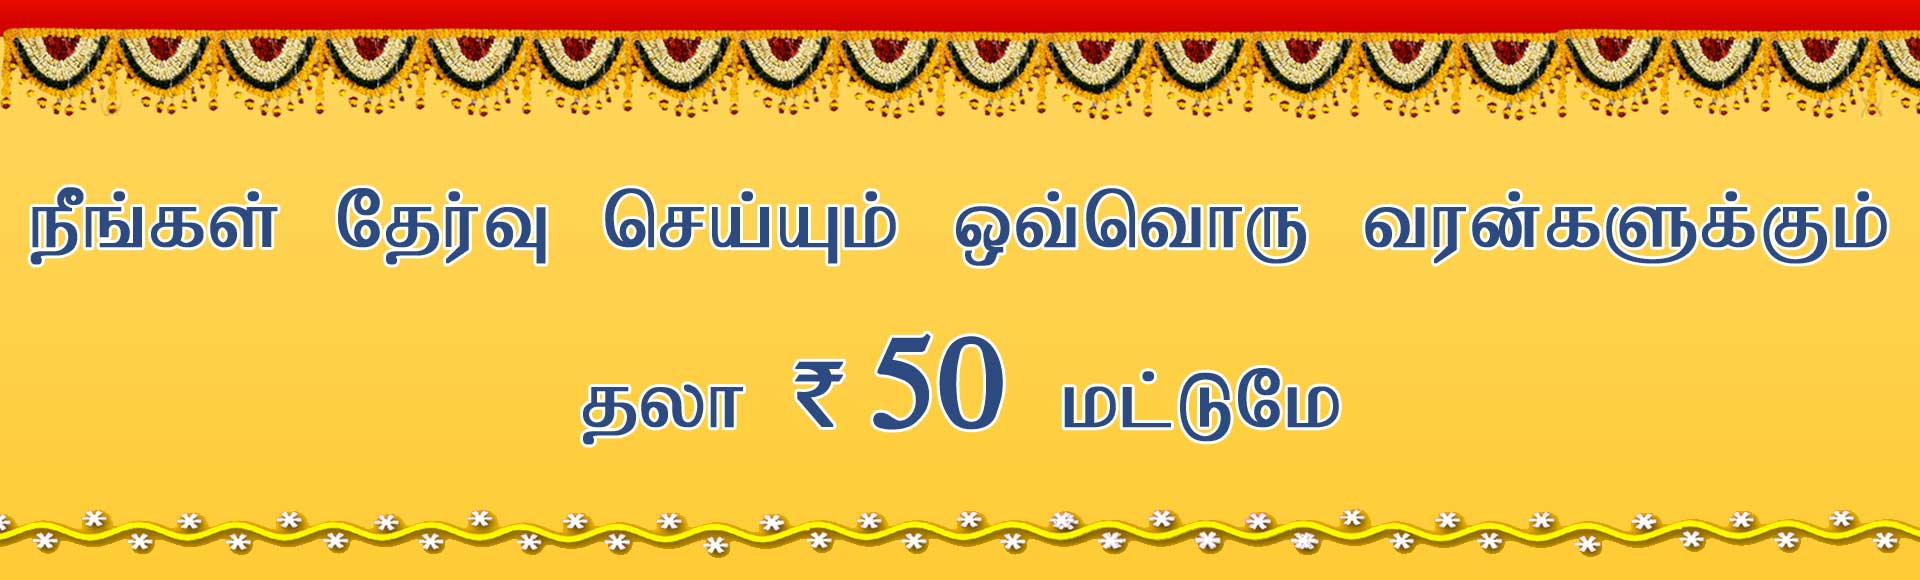 Matrimonial-service-in-erode-Erode's-No.1-Matrimony-Service-Provider-choose-wedding-profiles-at-just-rs-50-www.velmatrimony.com-erode